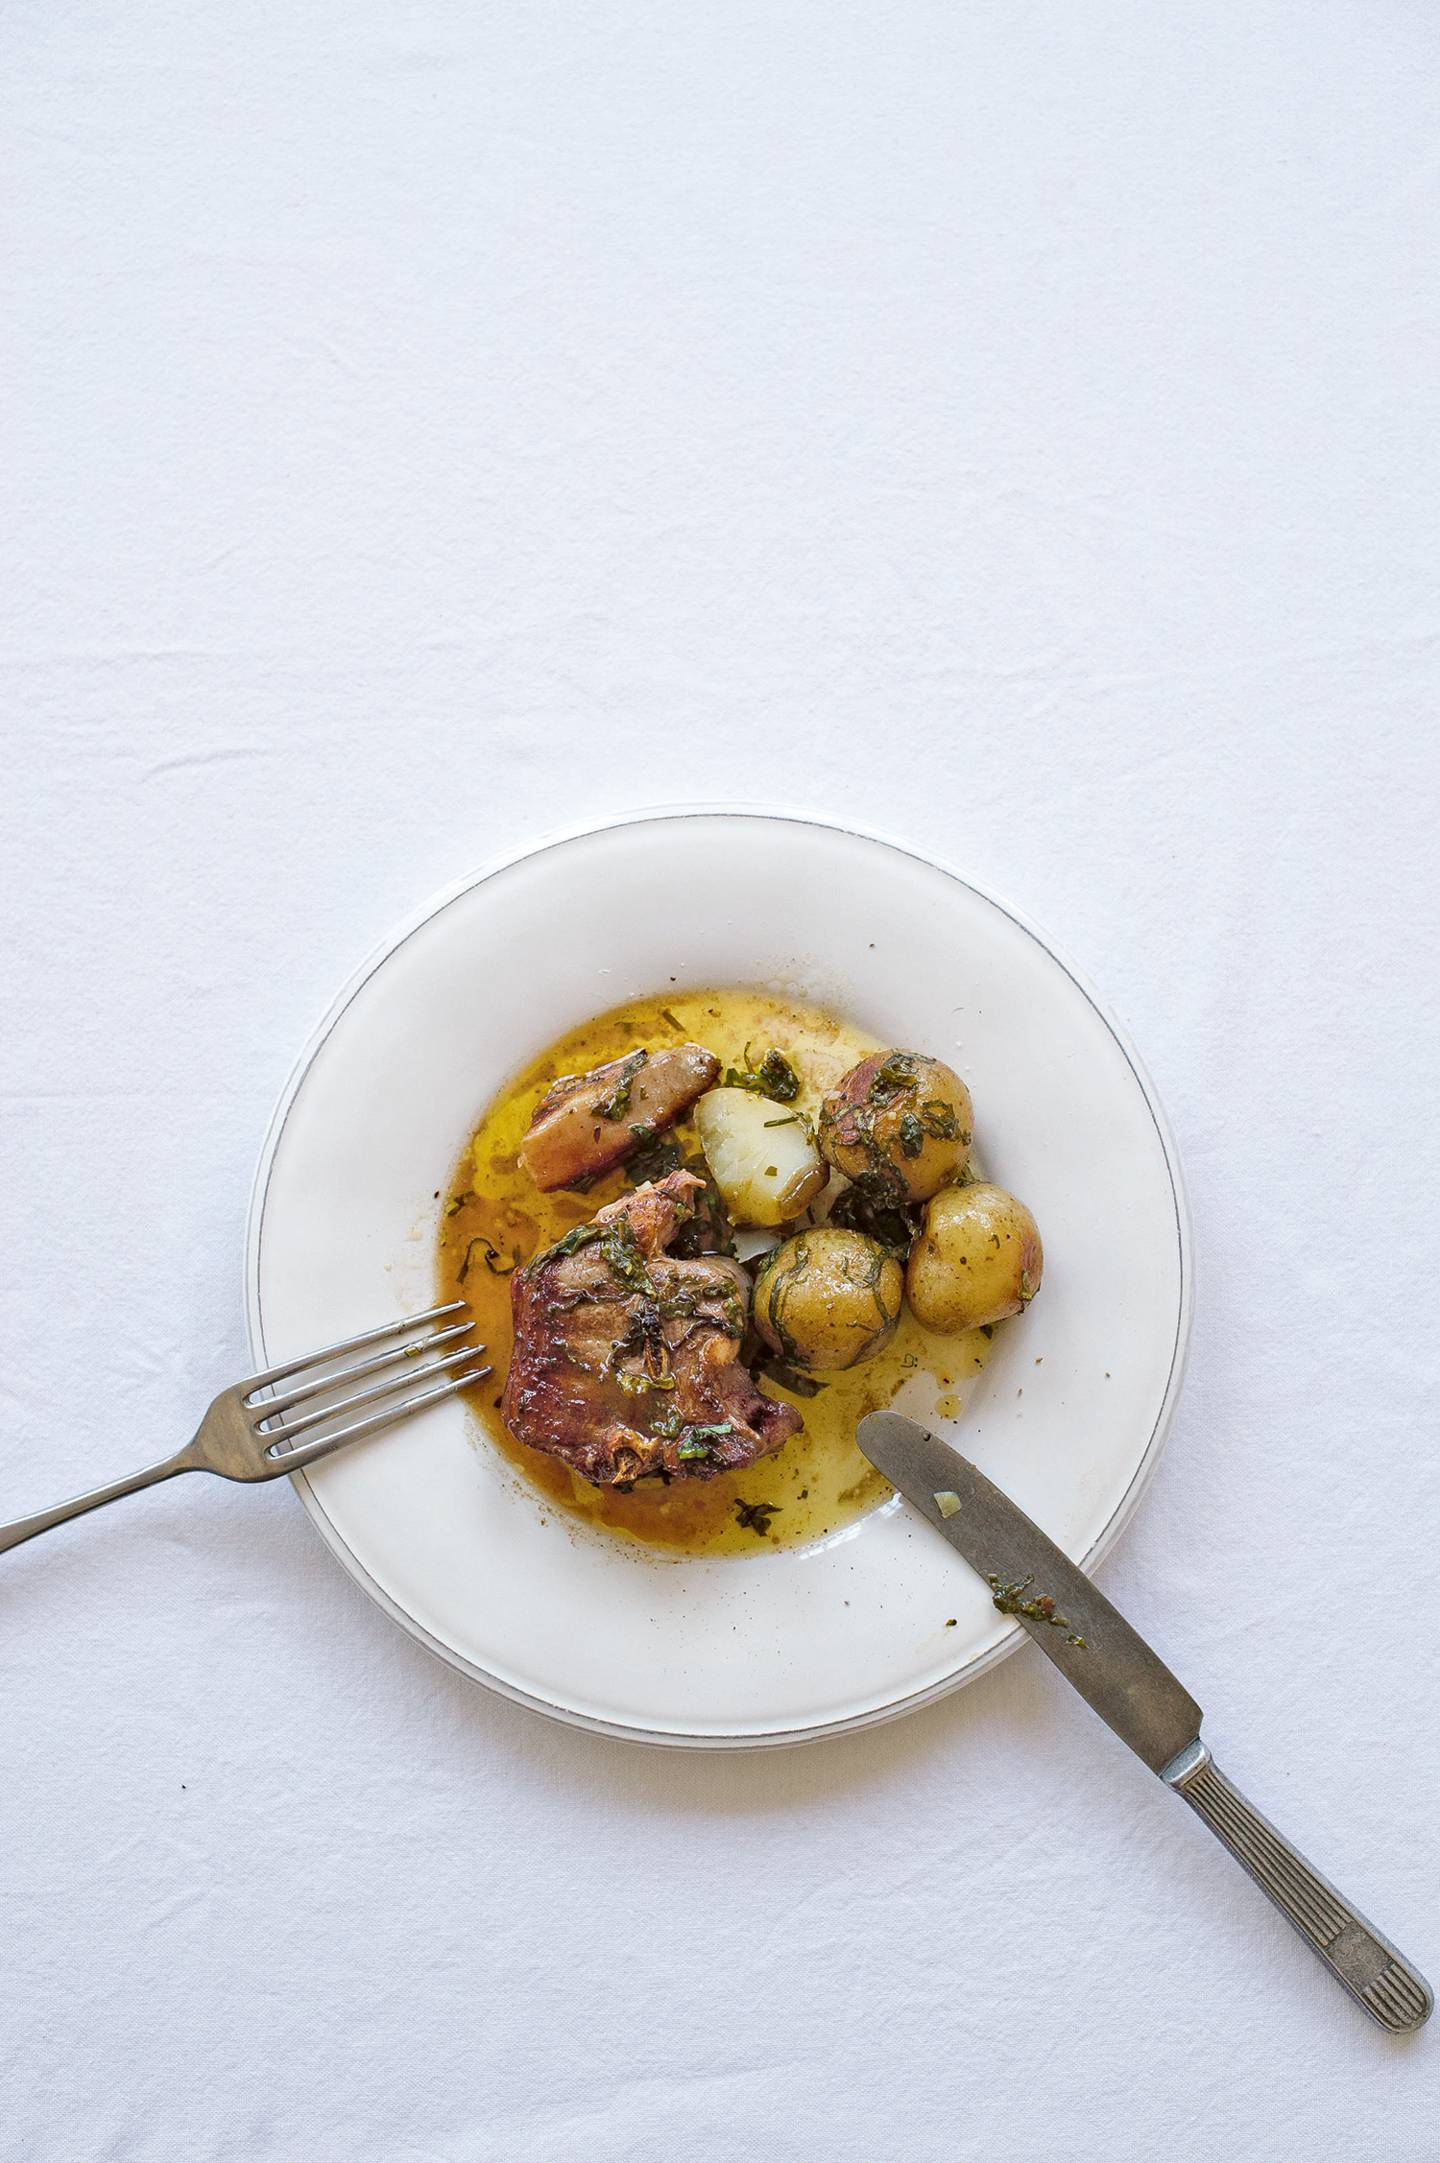 Sorrel buttered lamb chops with new potatoes